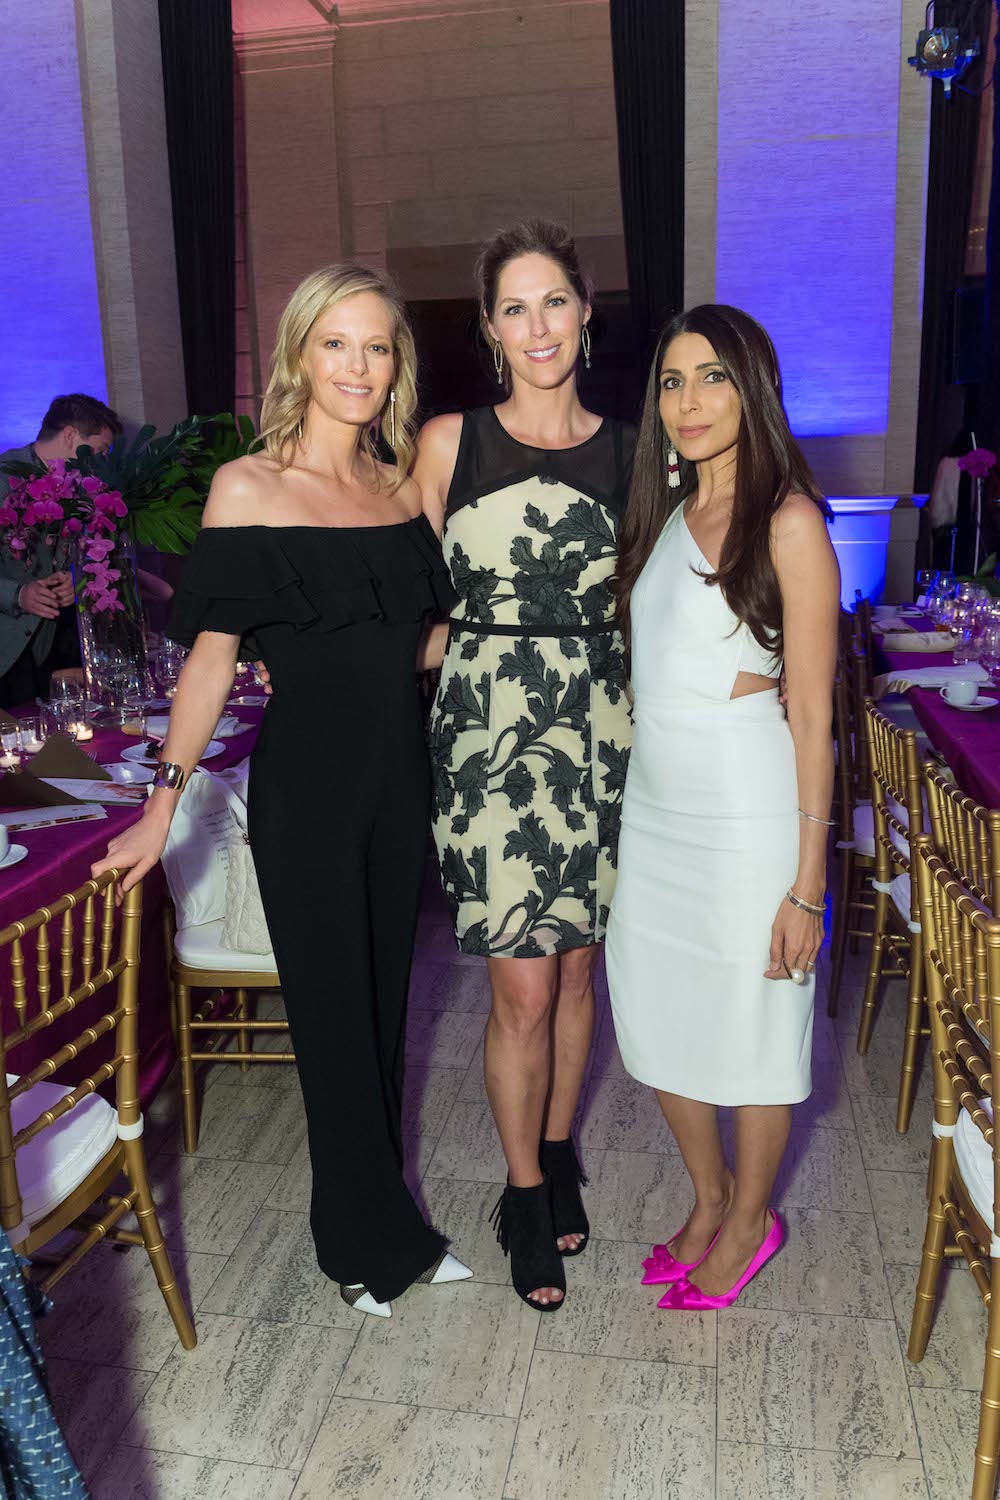 Katie Traina, Amy G and Sobia Shaikh